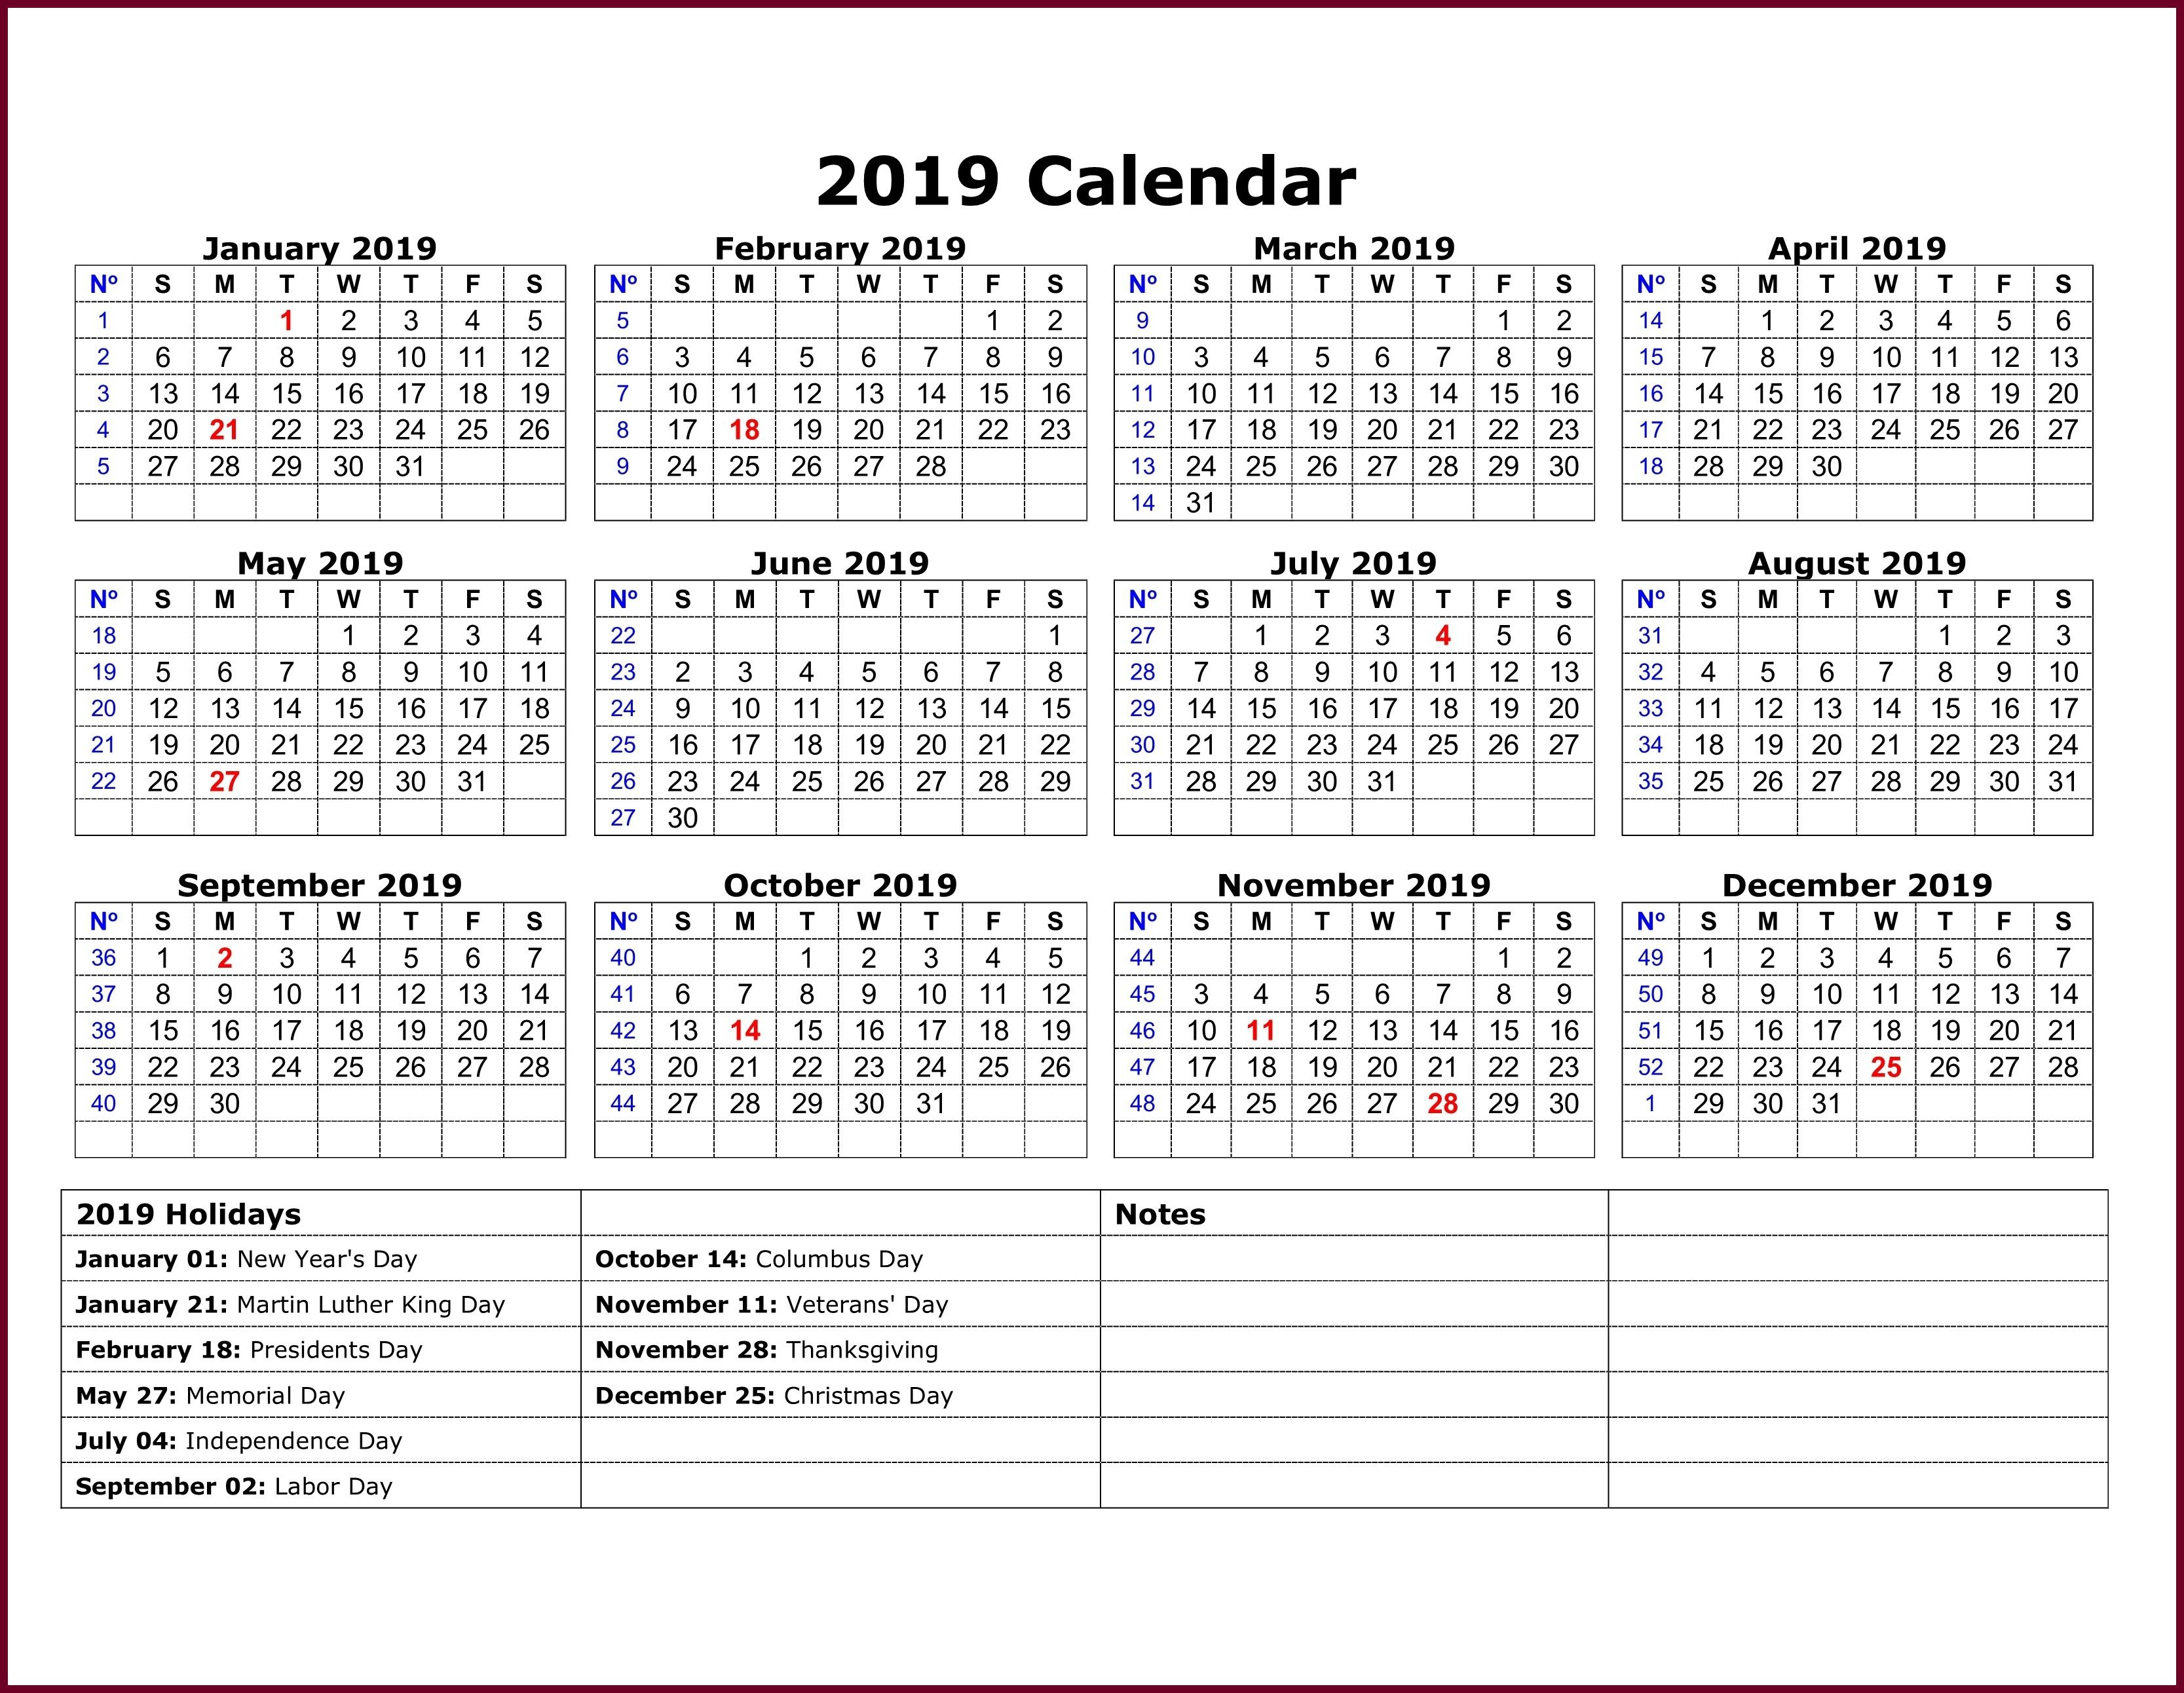 Calendar 2019 Template Excel 2019 Calendar Template In One Pages